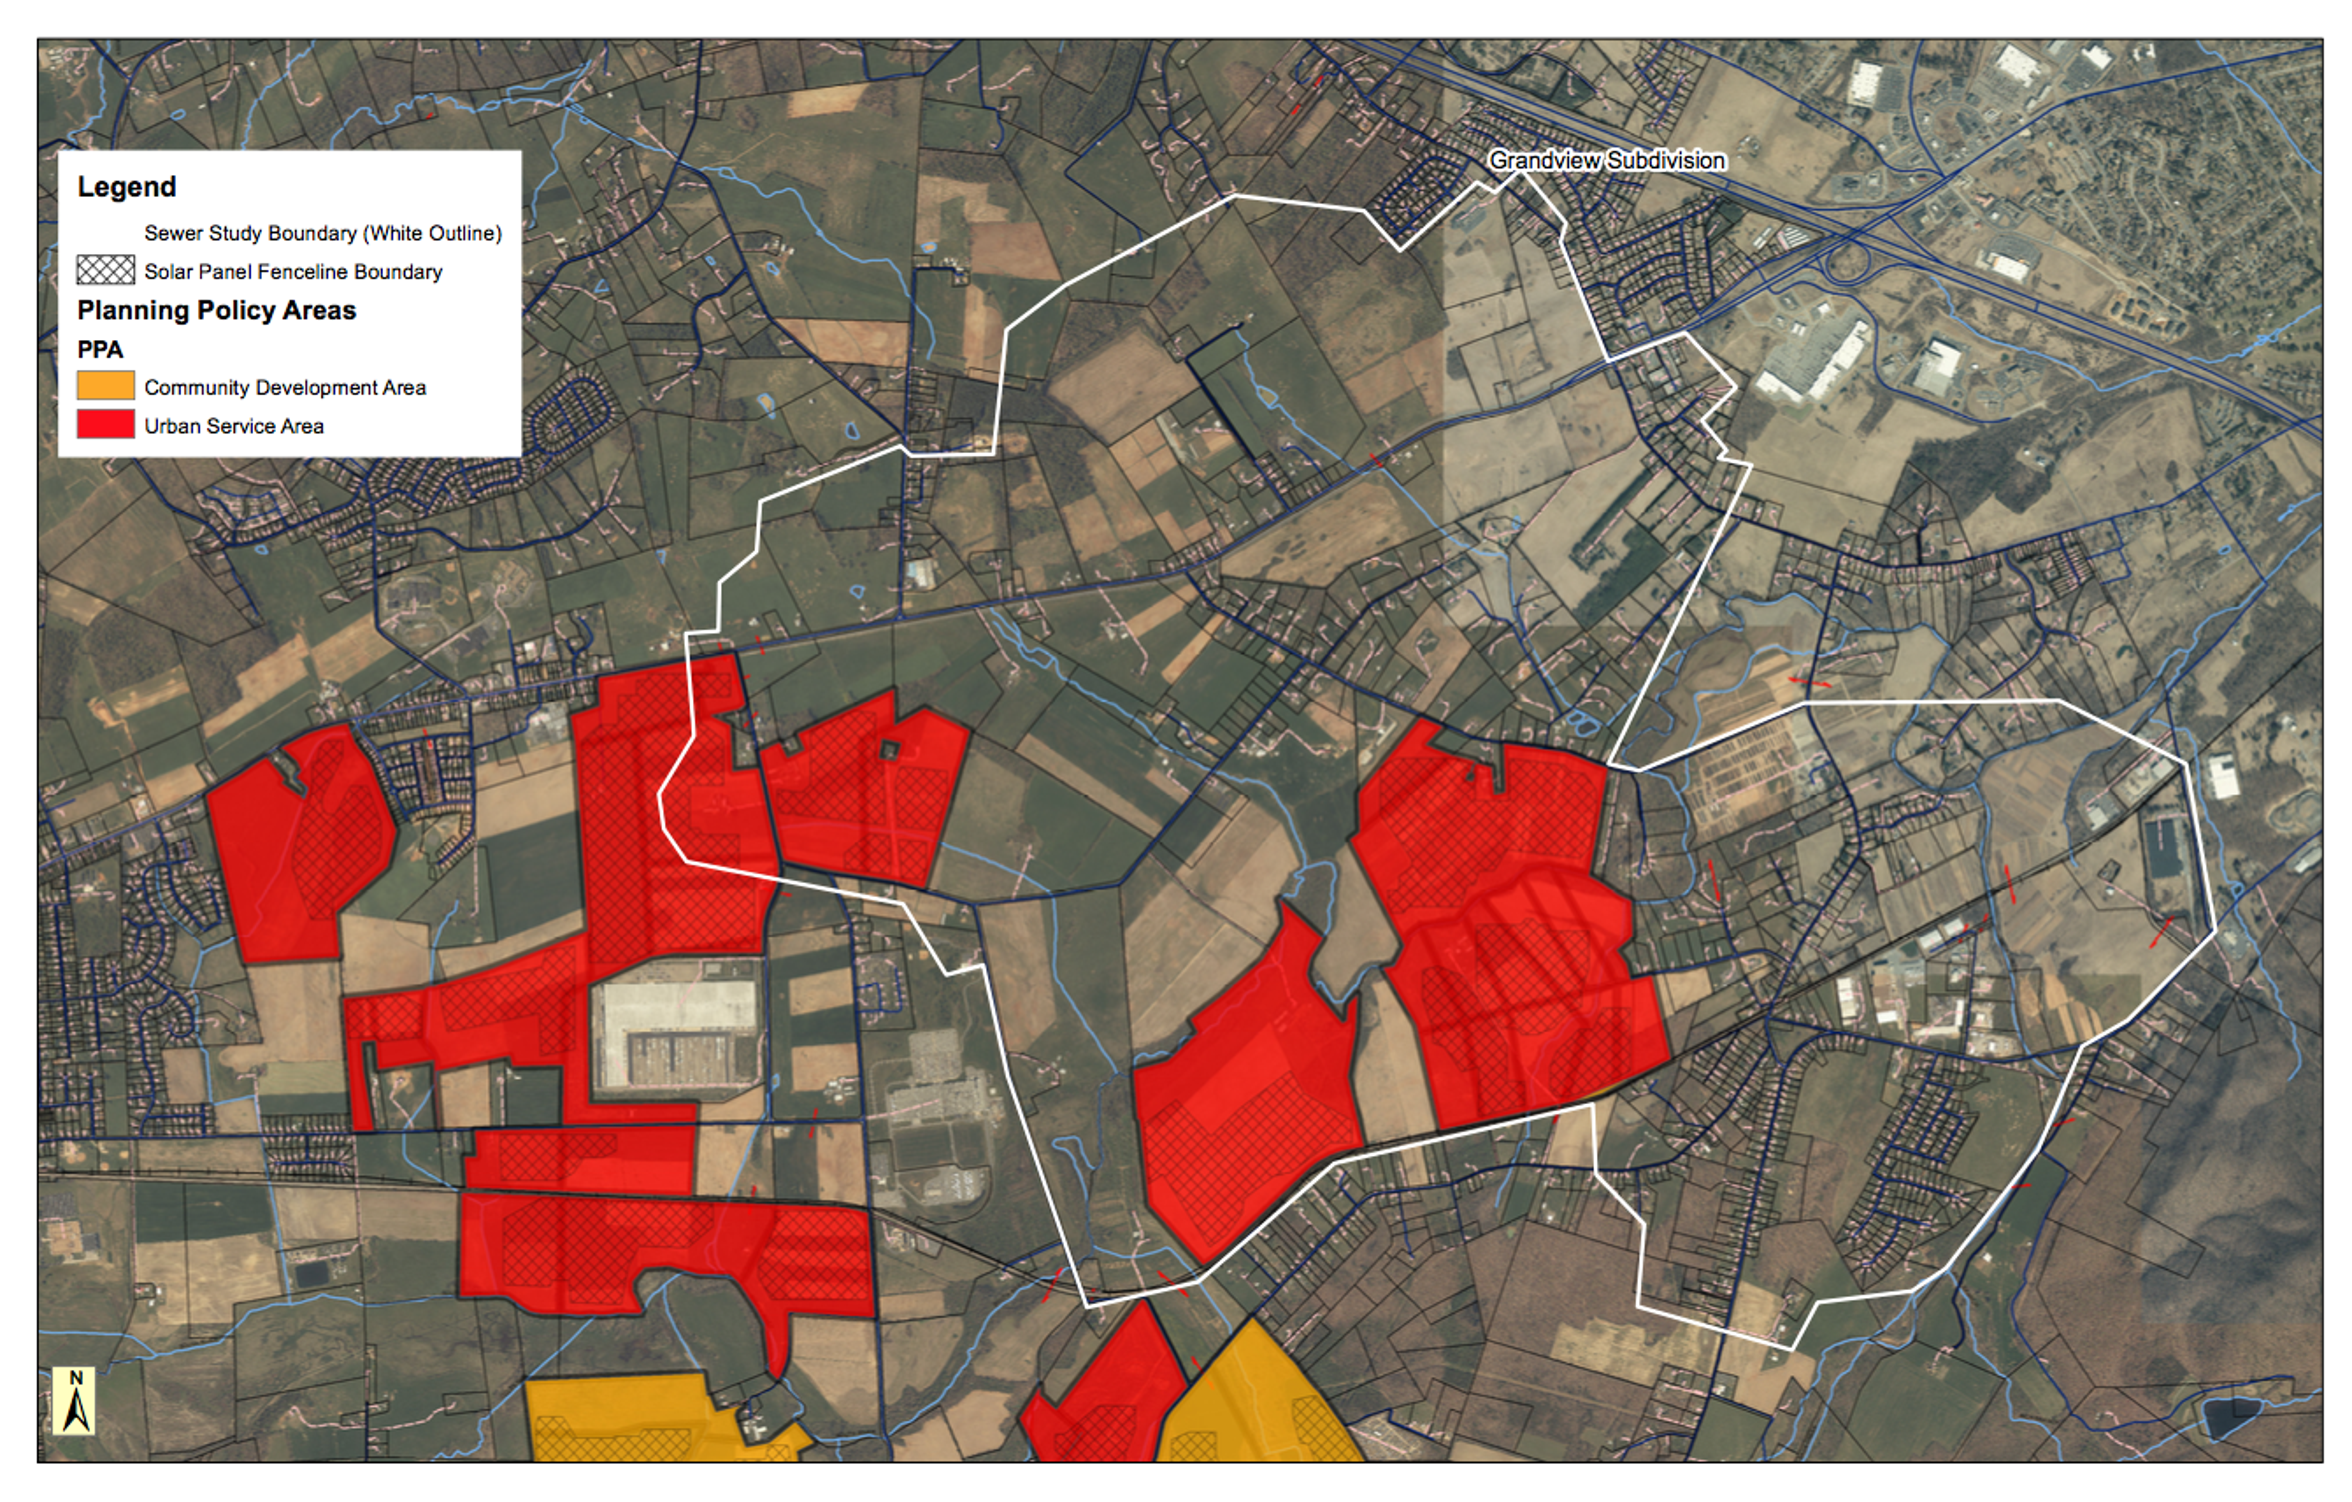 Augusta Solar LLC proposed solar farm plans overlap with the county's sewer study. The study shows that water and sewer could be added to the area, which the solar farm would not need.